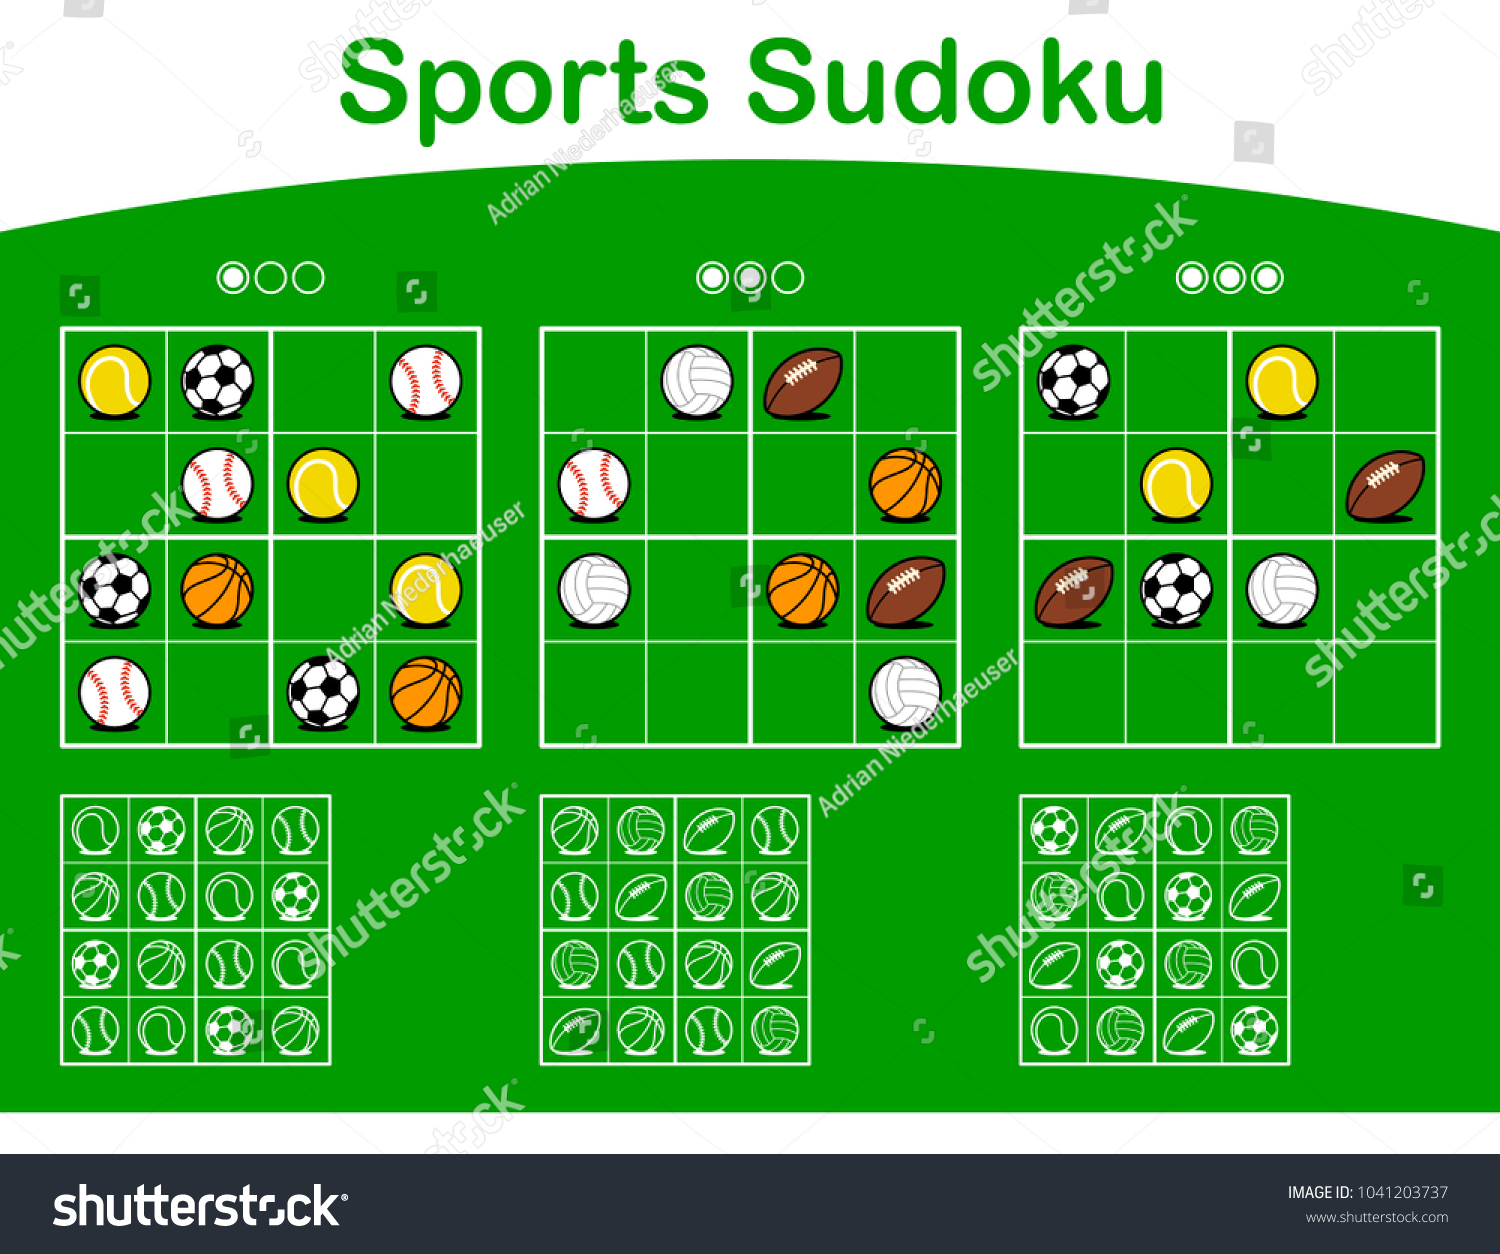 Three Sudoku Puzzle Grids Different Levels Stock Vector (Royalty